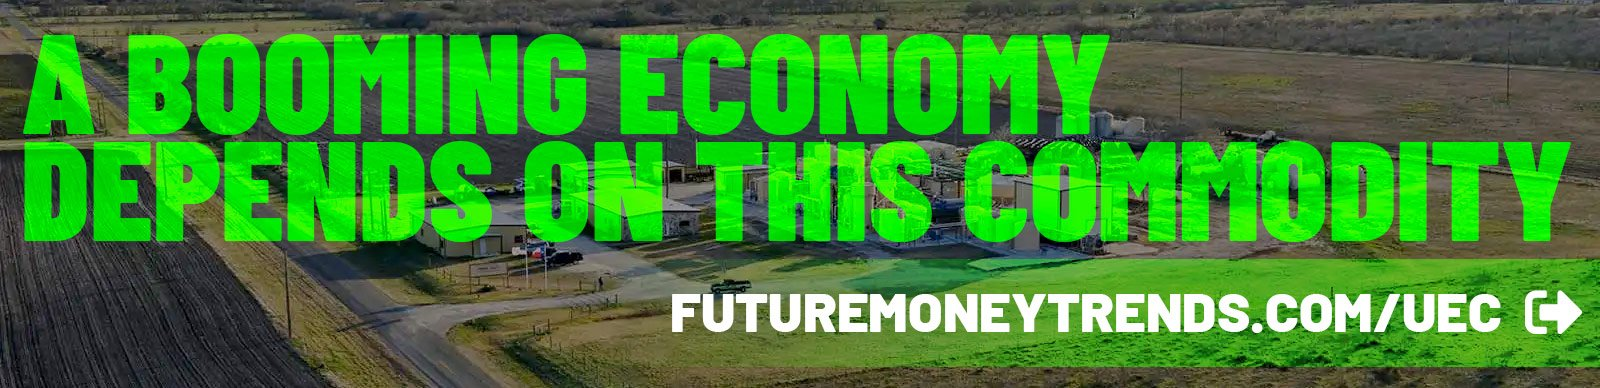 A Booming Economy Depends on the this Commodity | Future Money Trends